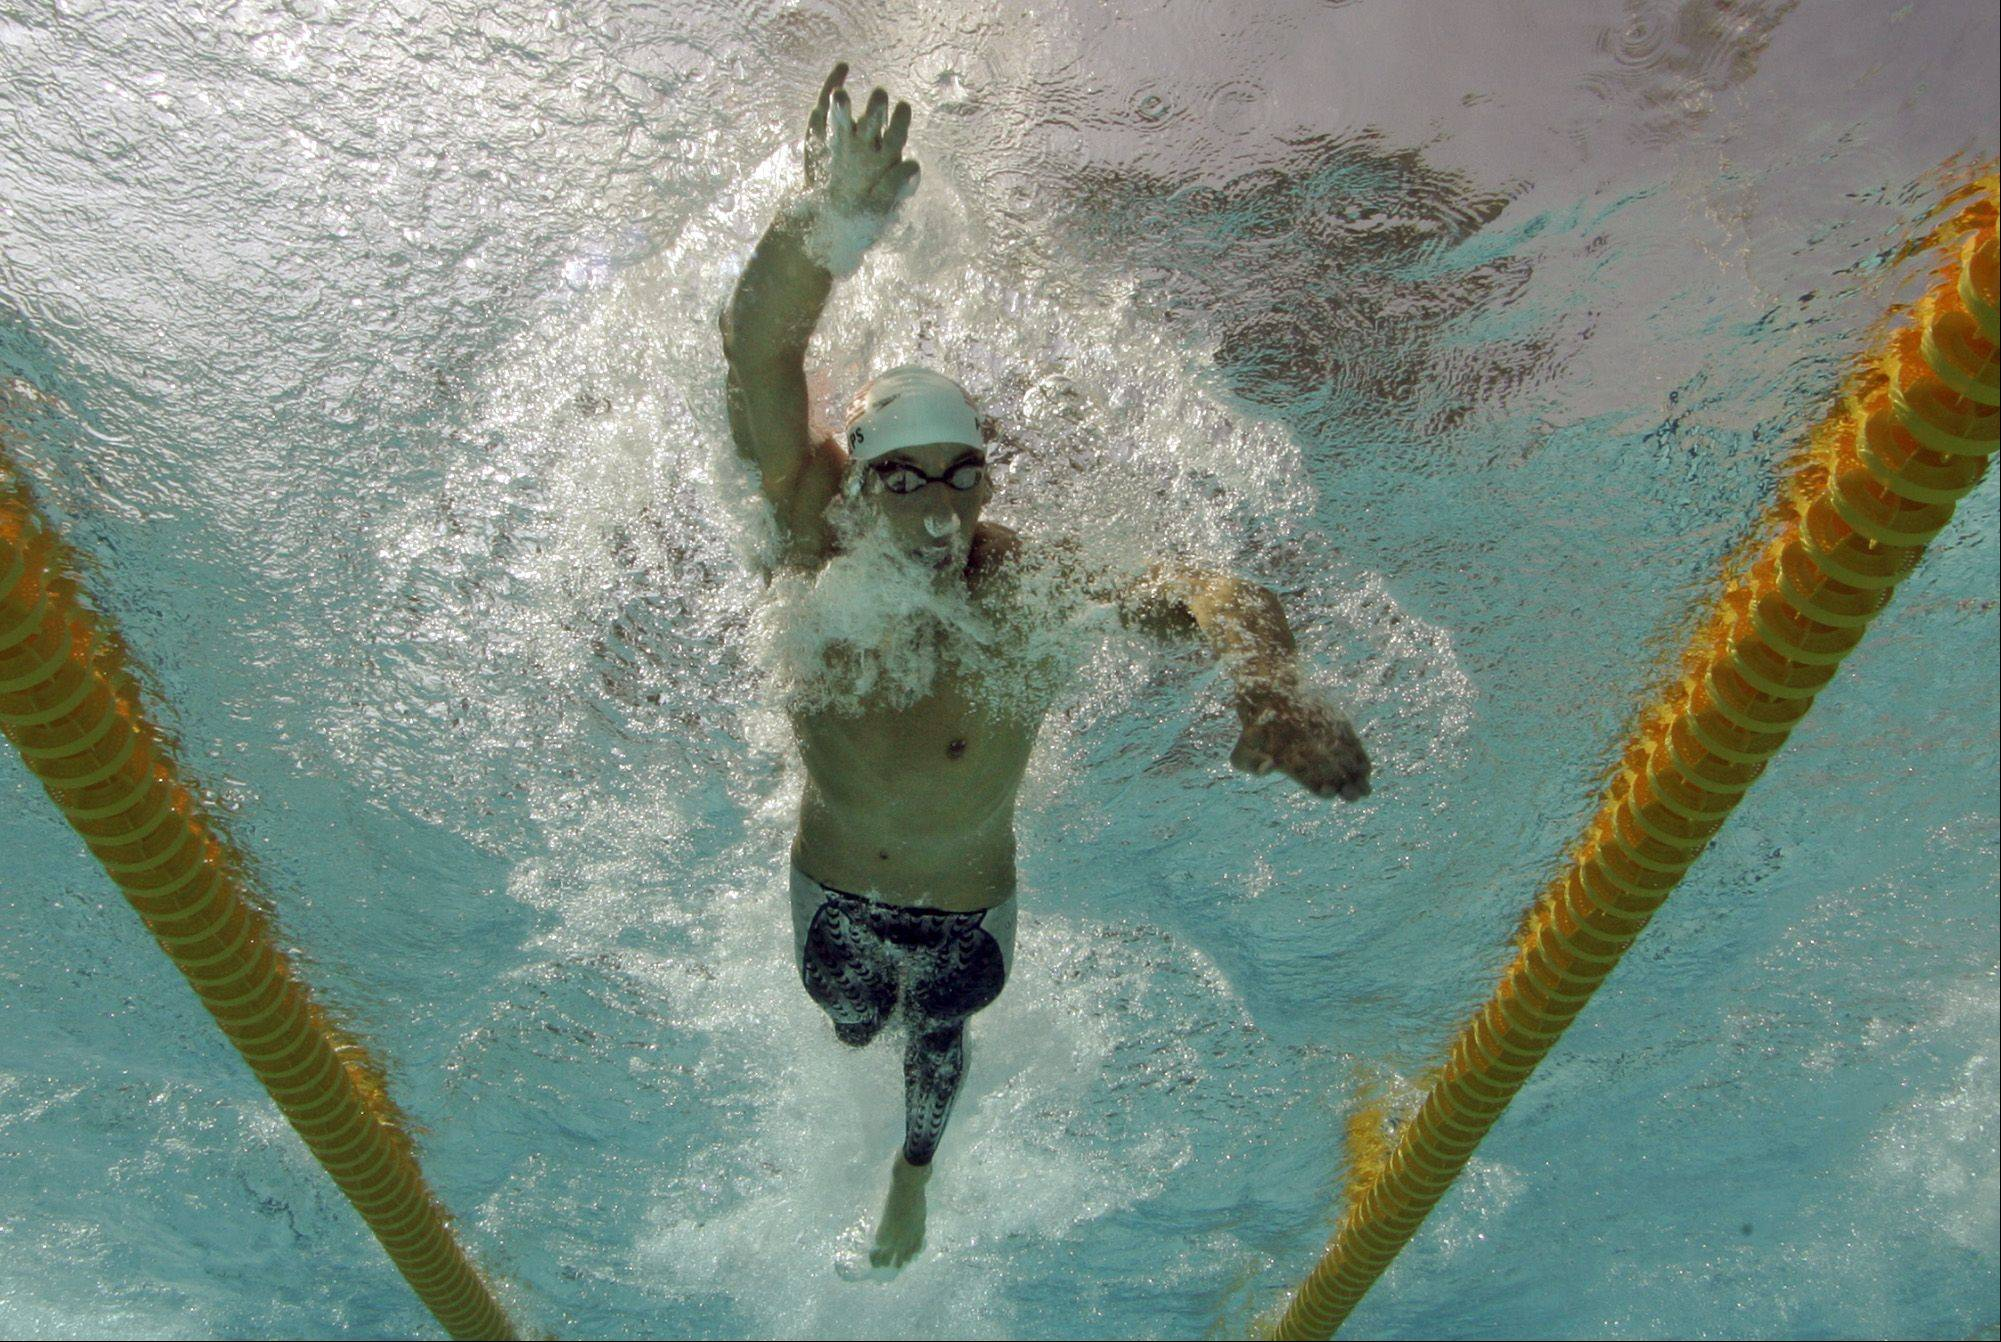 Michael Phelps, of the United States, swims during a qualifying heat of the 200-meter freestyle at the Olympic Aquatic Centre during the 2004 Olympic Games in Athens, Sunday, Aug. 15, 2004.